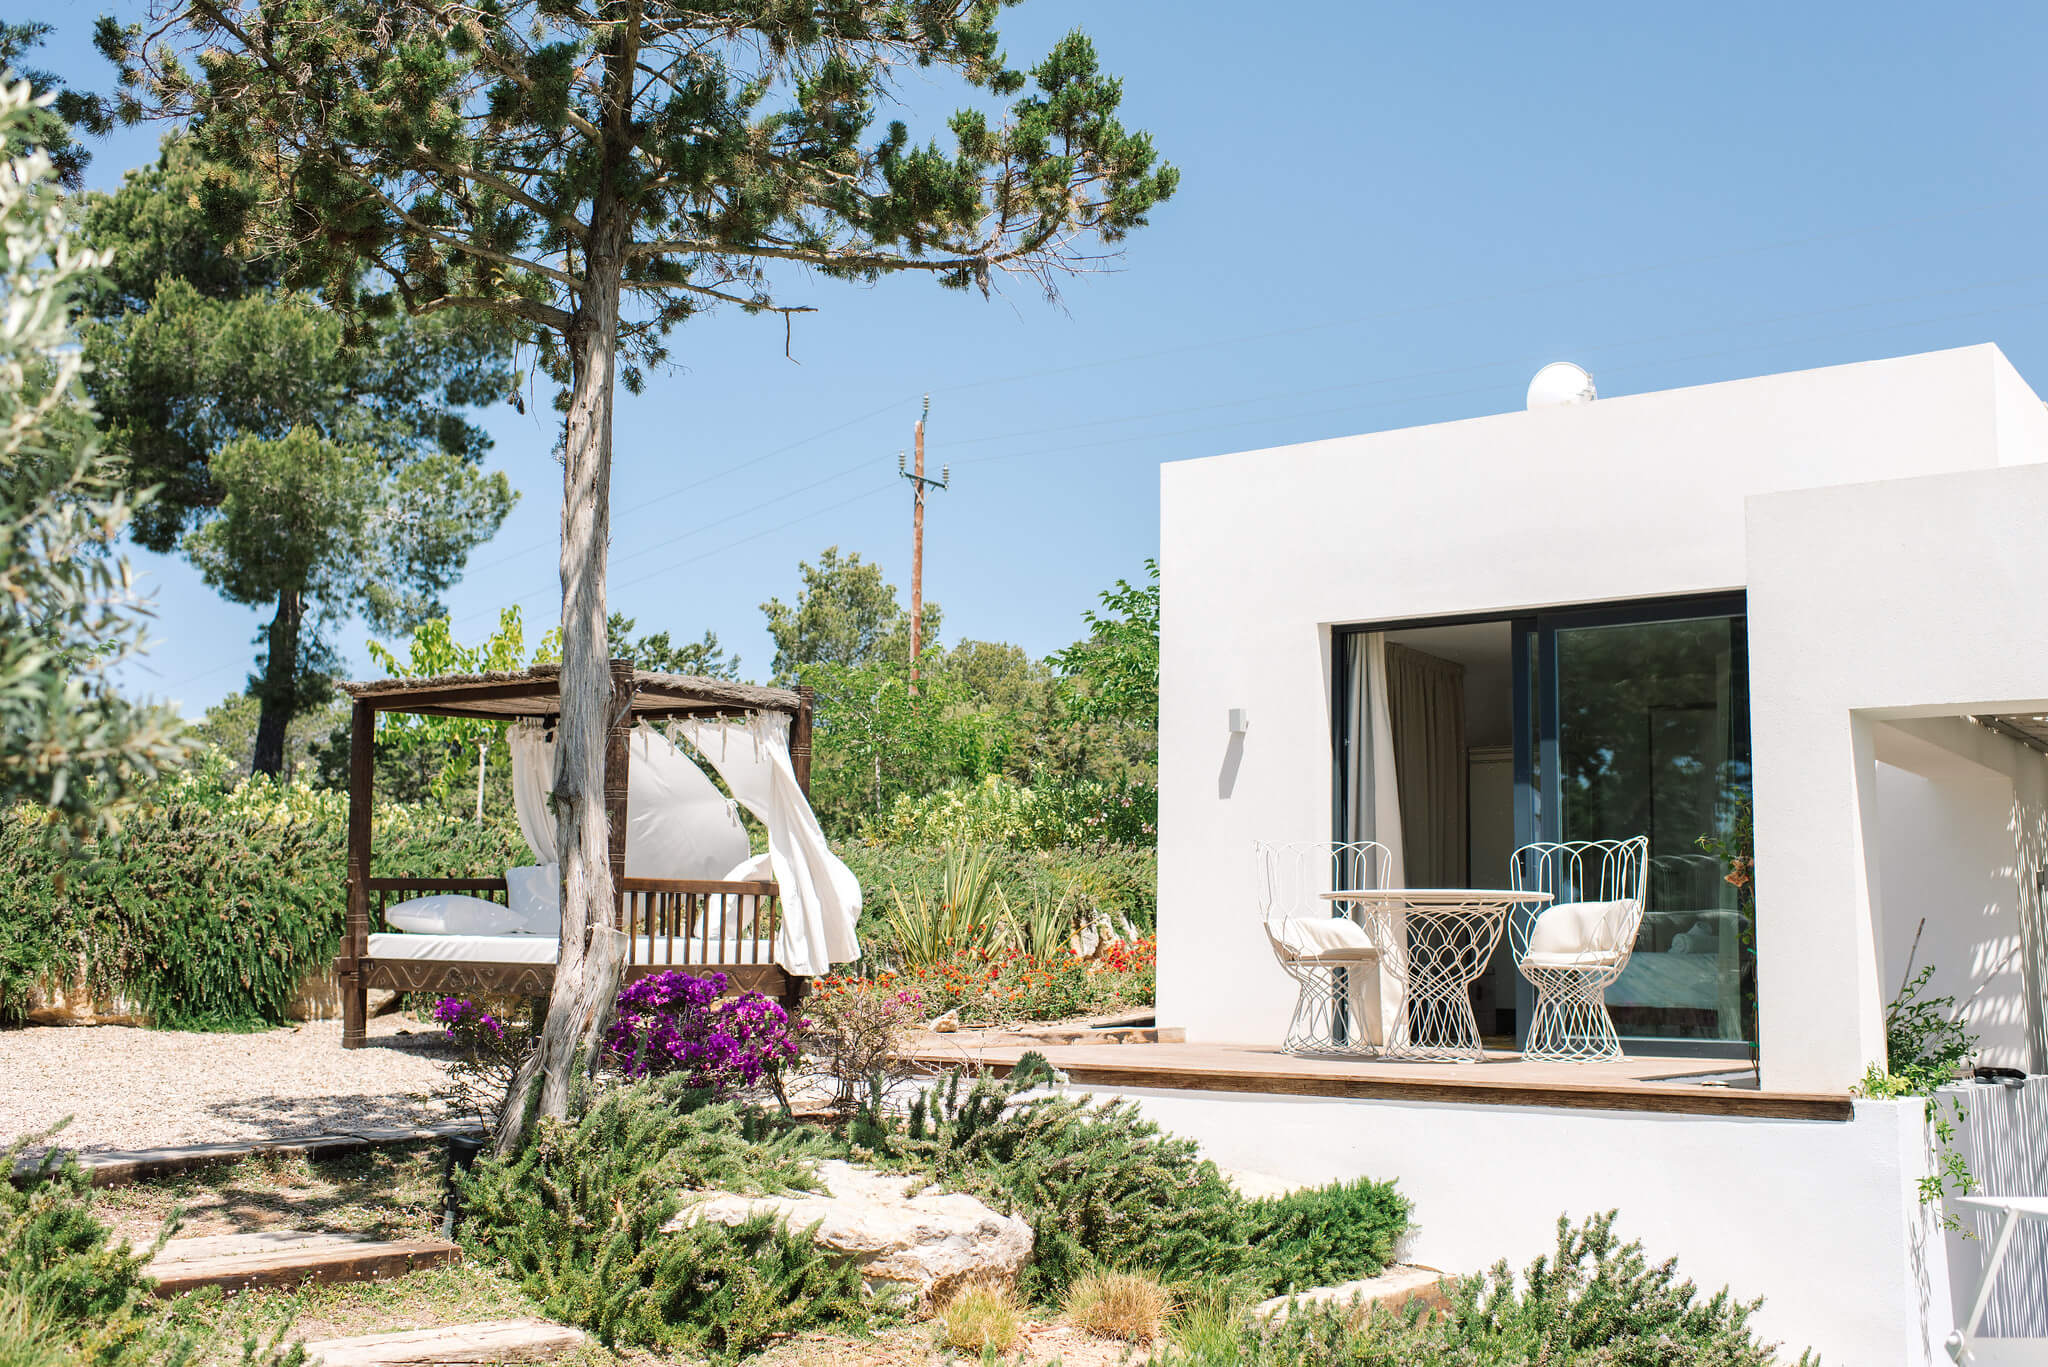 https://www.white-ibiza.com/wp-content/uploads/2020/06/white-ibiza-villas-can-jondal-exterior-daybed-and-terrace.jpg